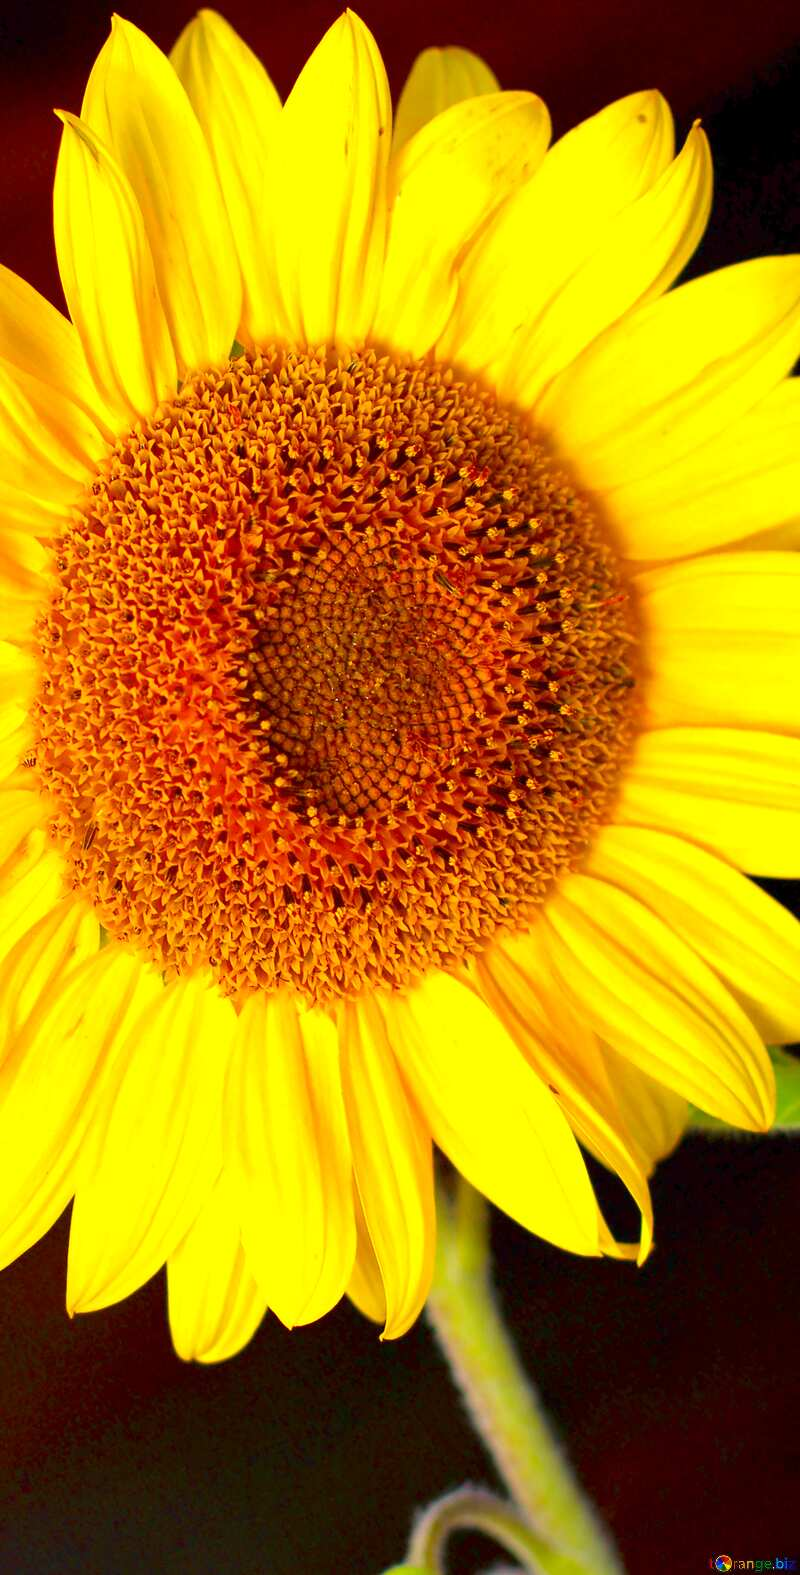 Image for profile picture Sunflower flower on black background. №32797